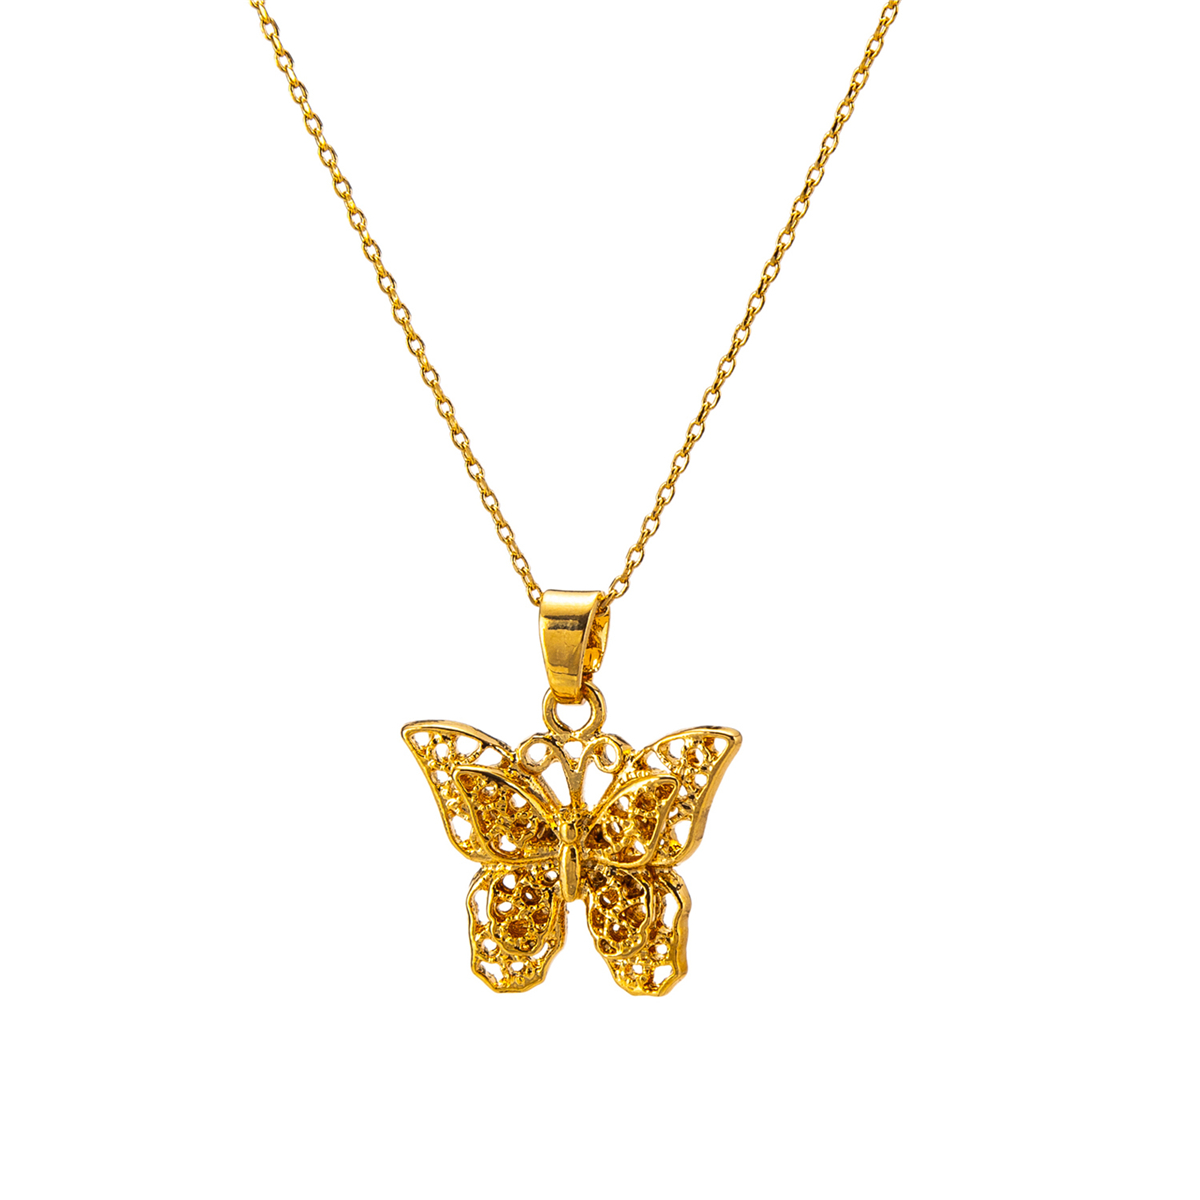 Gold Color Hollow Butterfly Pendant Necklace for Women Men Link Chain Wedding Birthday Hip-hop Punk Jewelry